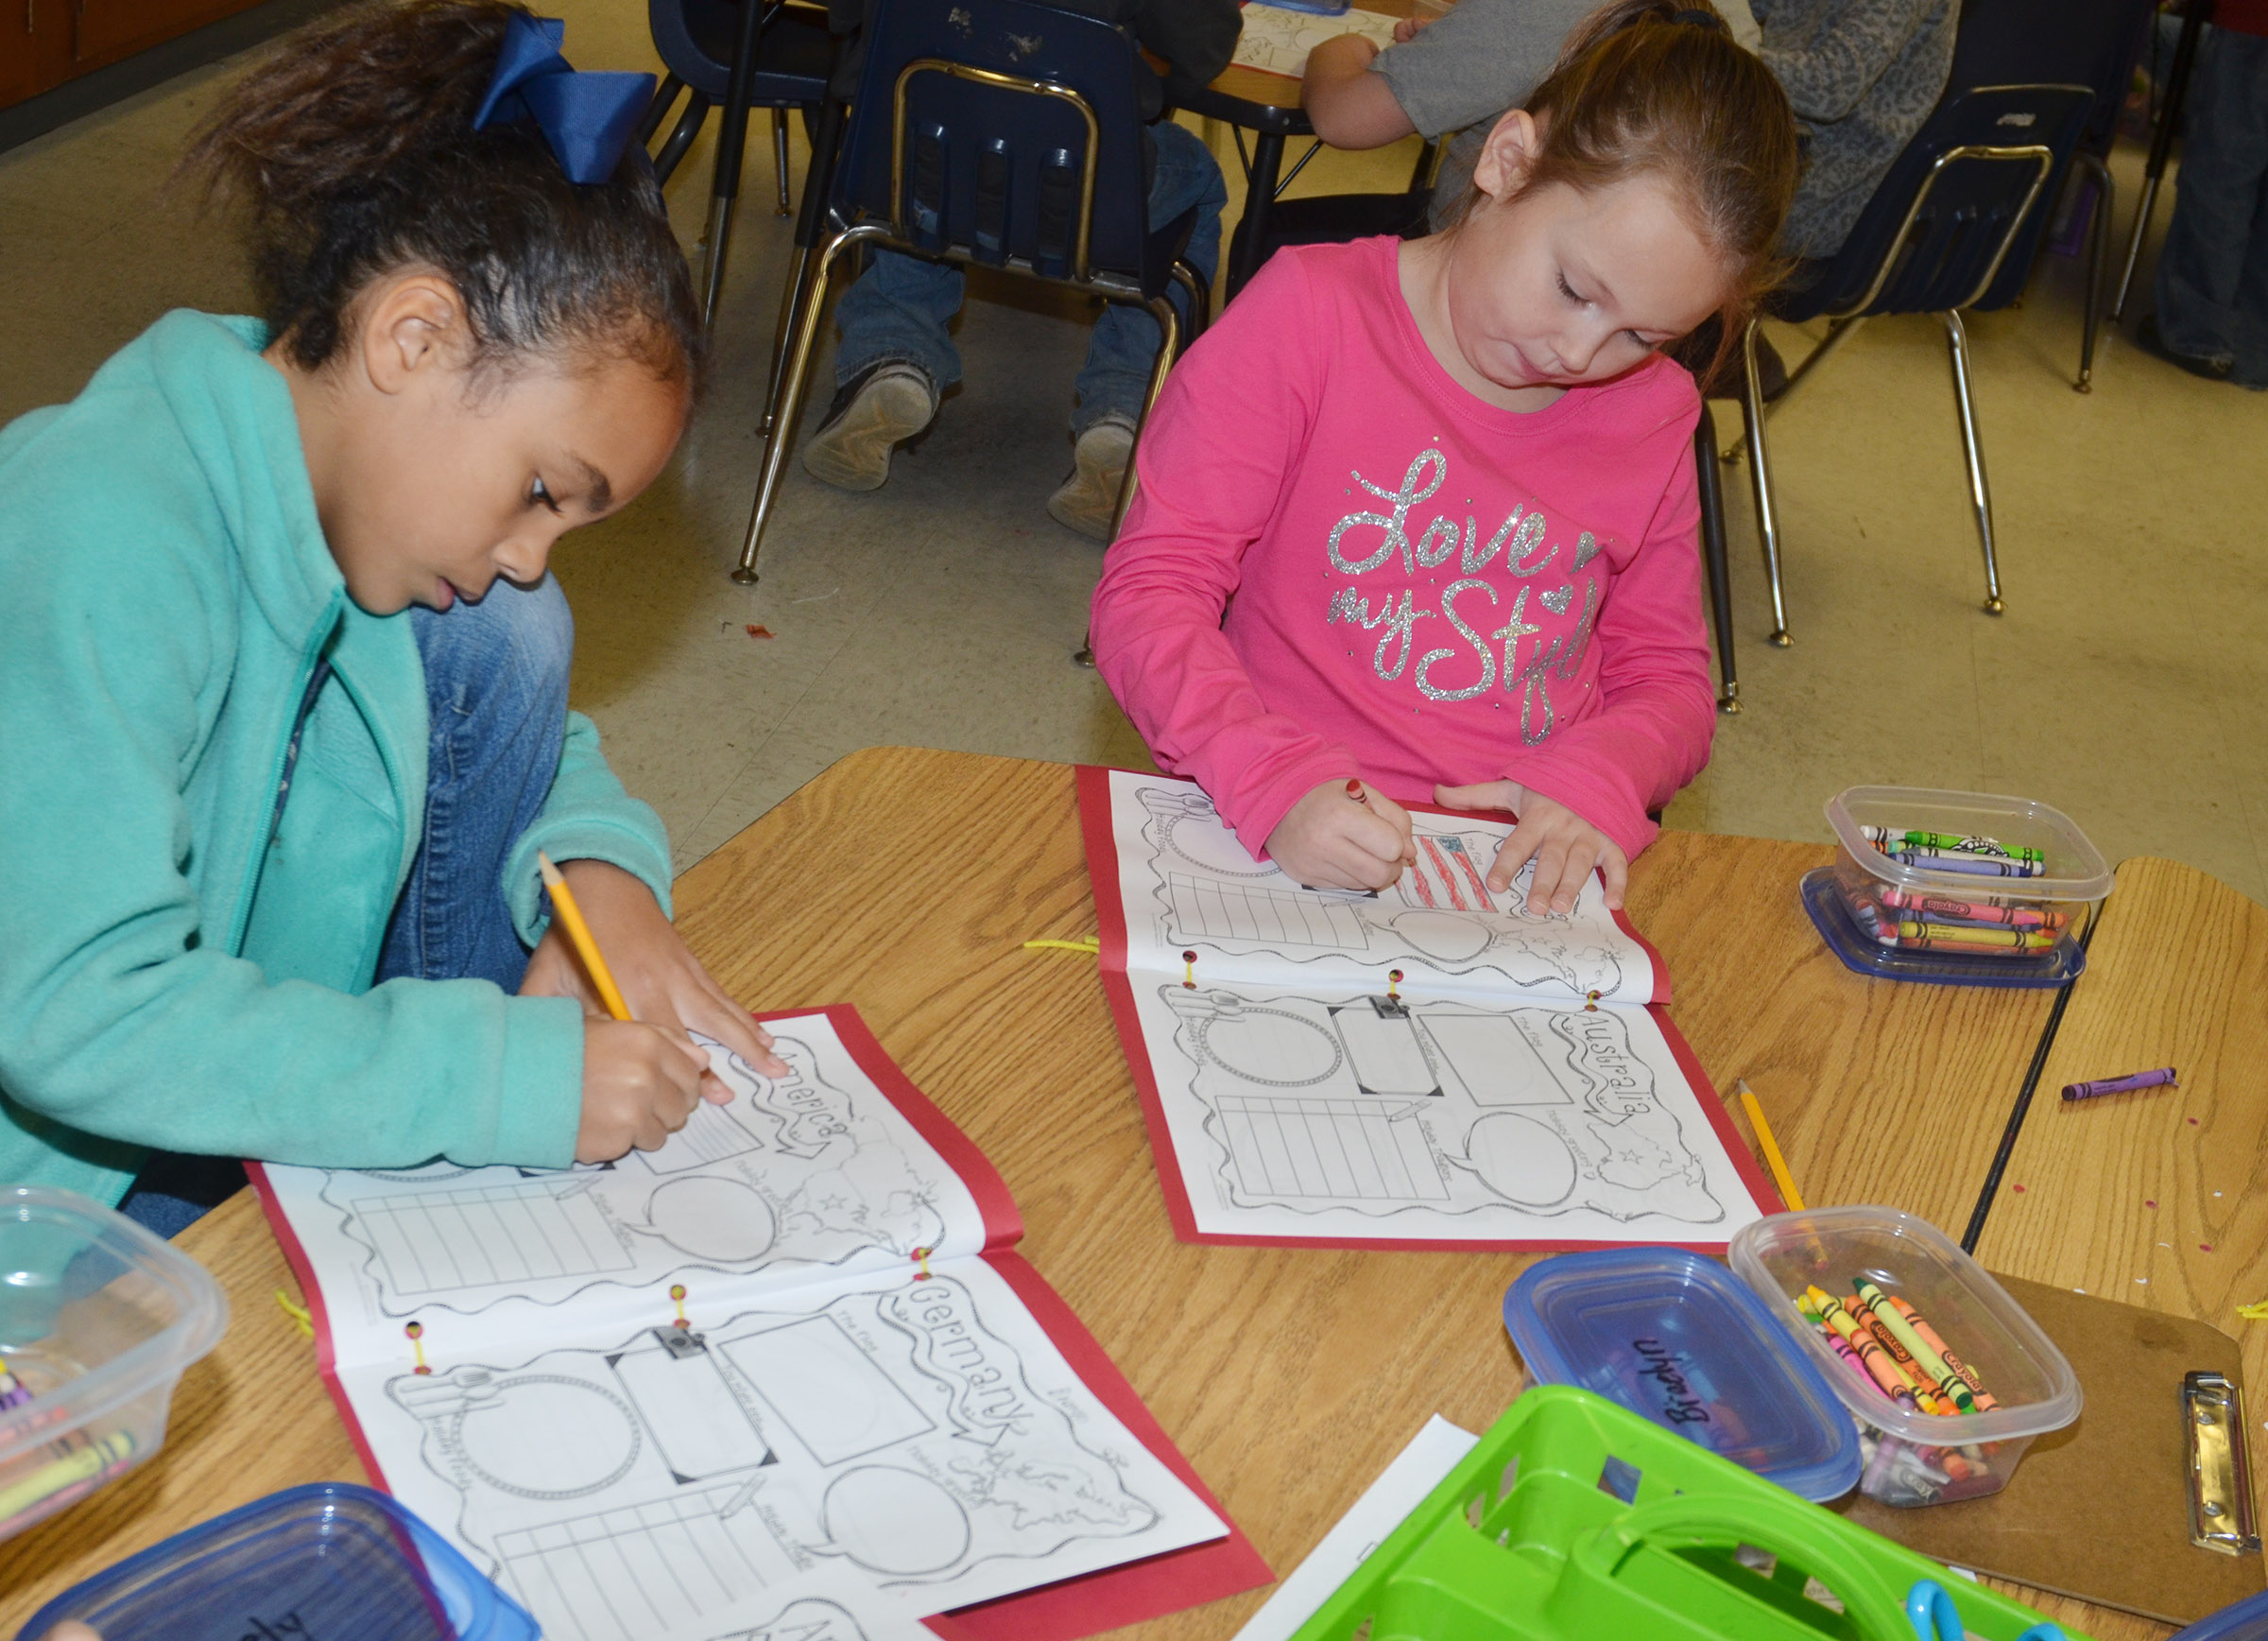 CES second-graders Braelyn Taylor, at left, and River McFarland draw in their Christmas tradition books.